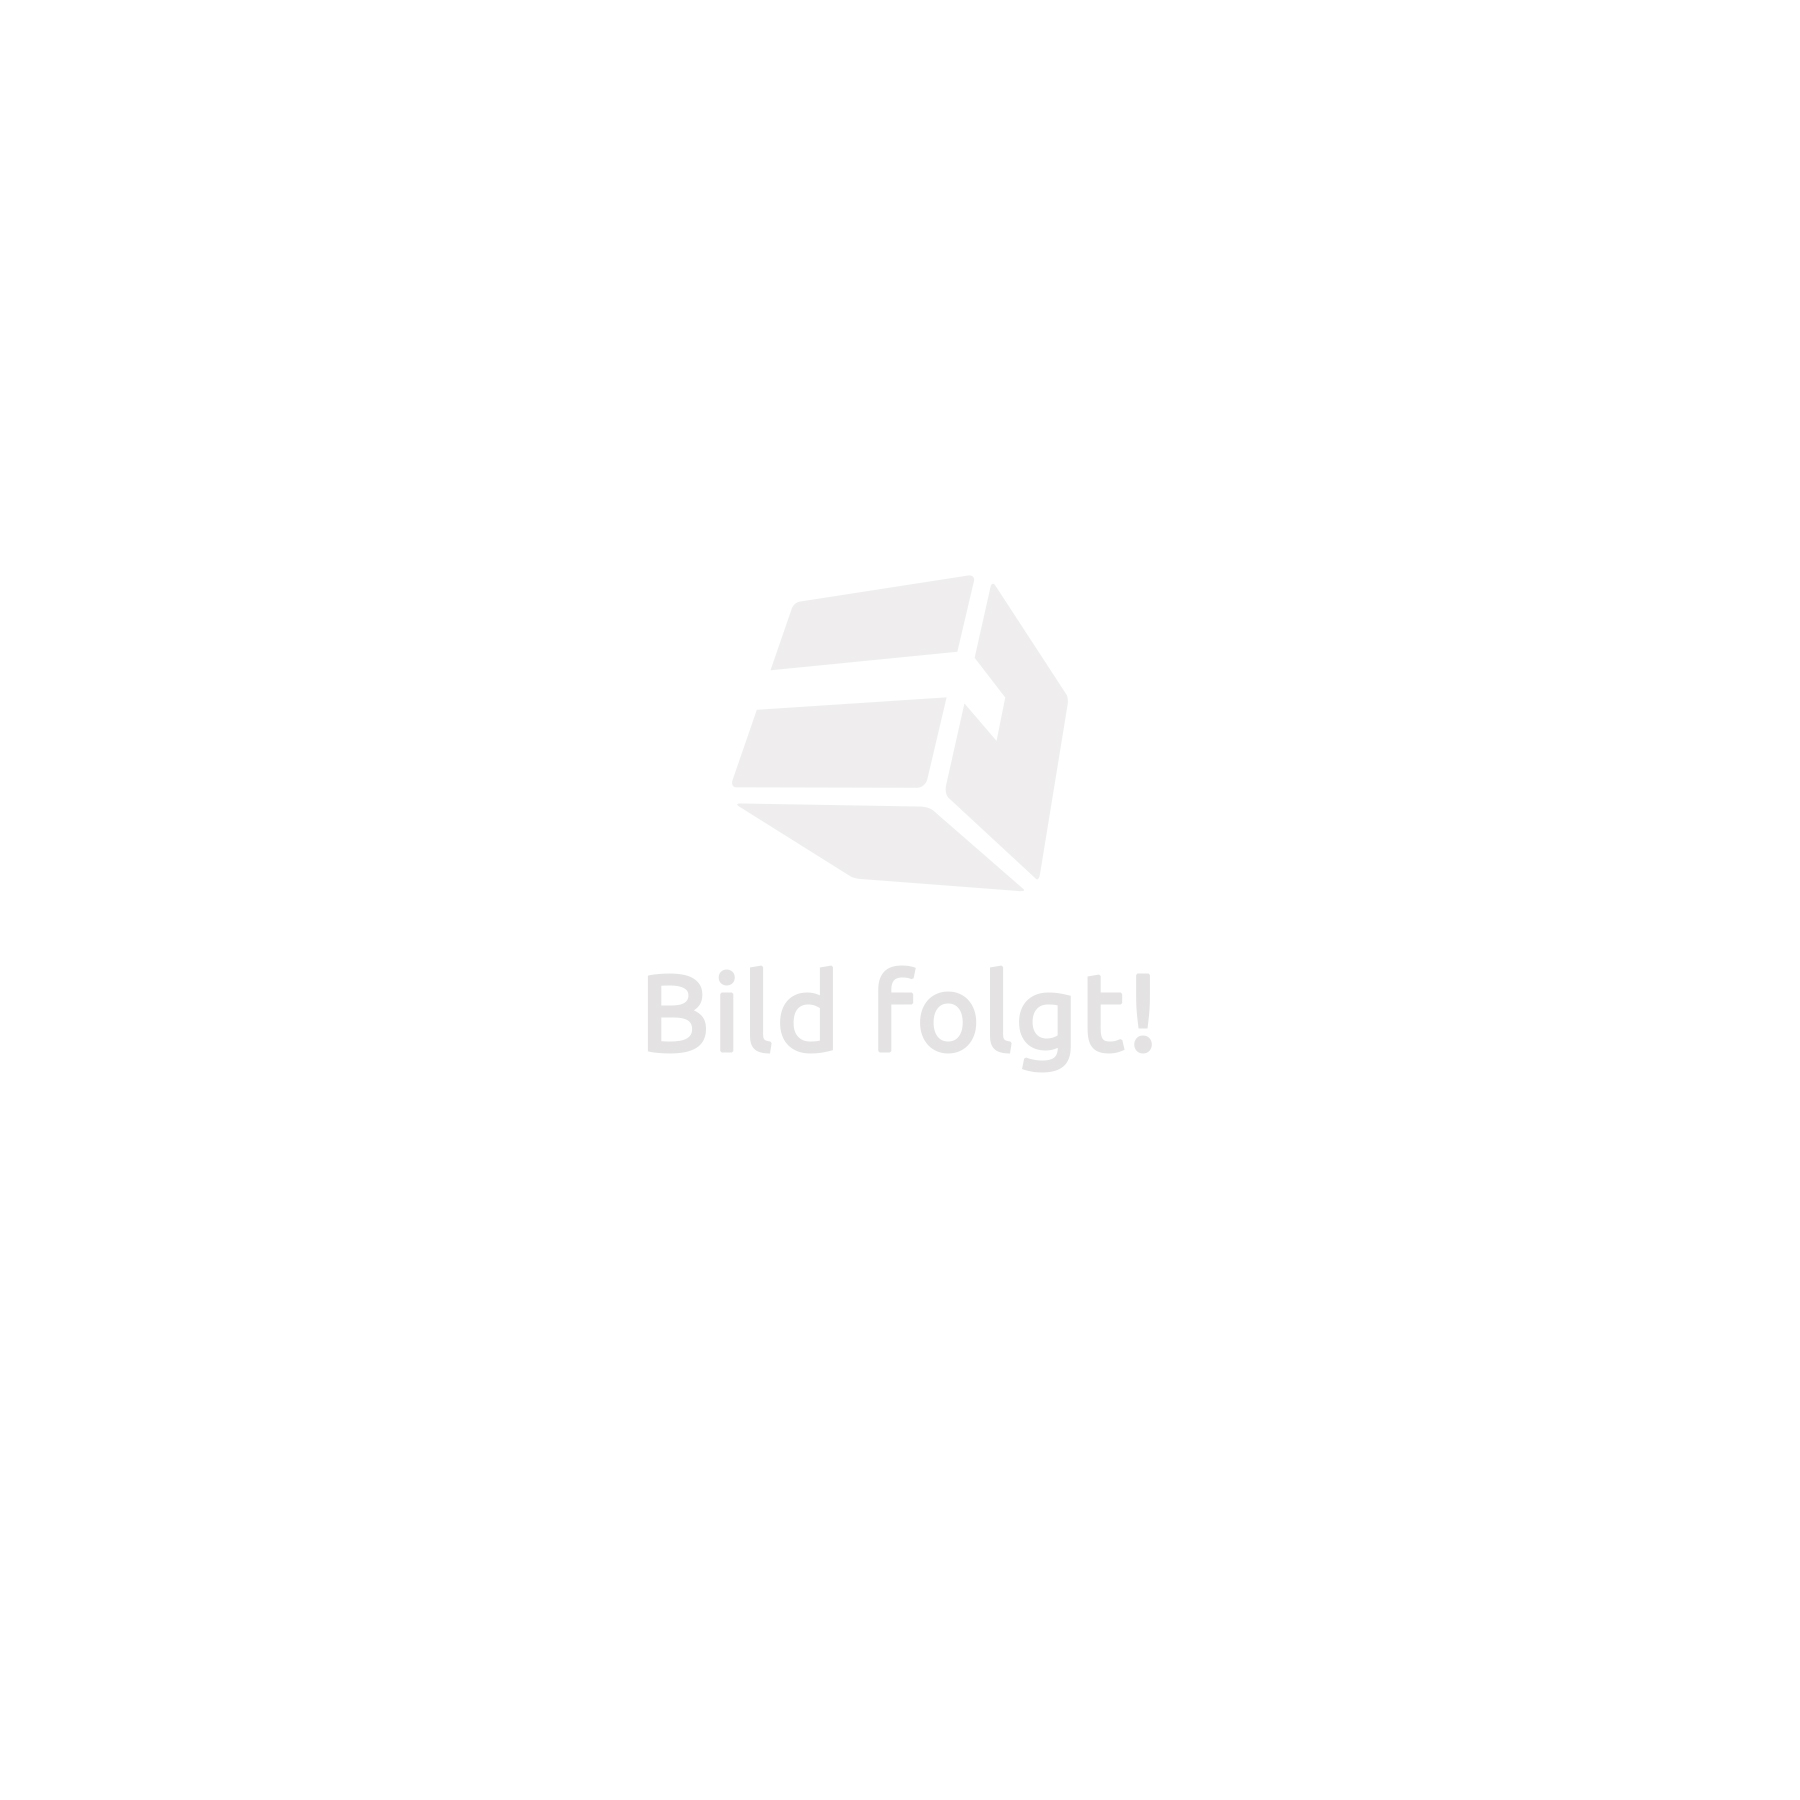 tapis de jeu puzzle mousse souple alphabets chiffres jeux educatif enfant baby ebay. Black Bedroom Furniture Sets. Home Design Ideas